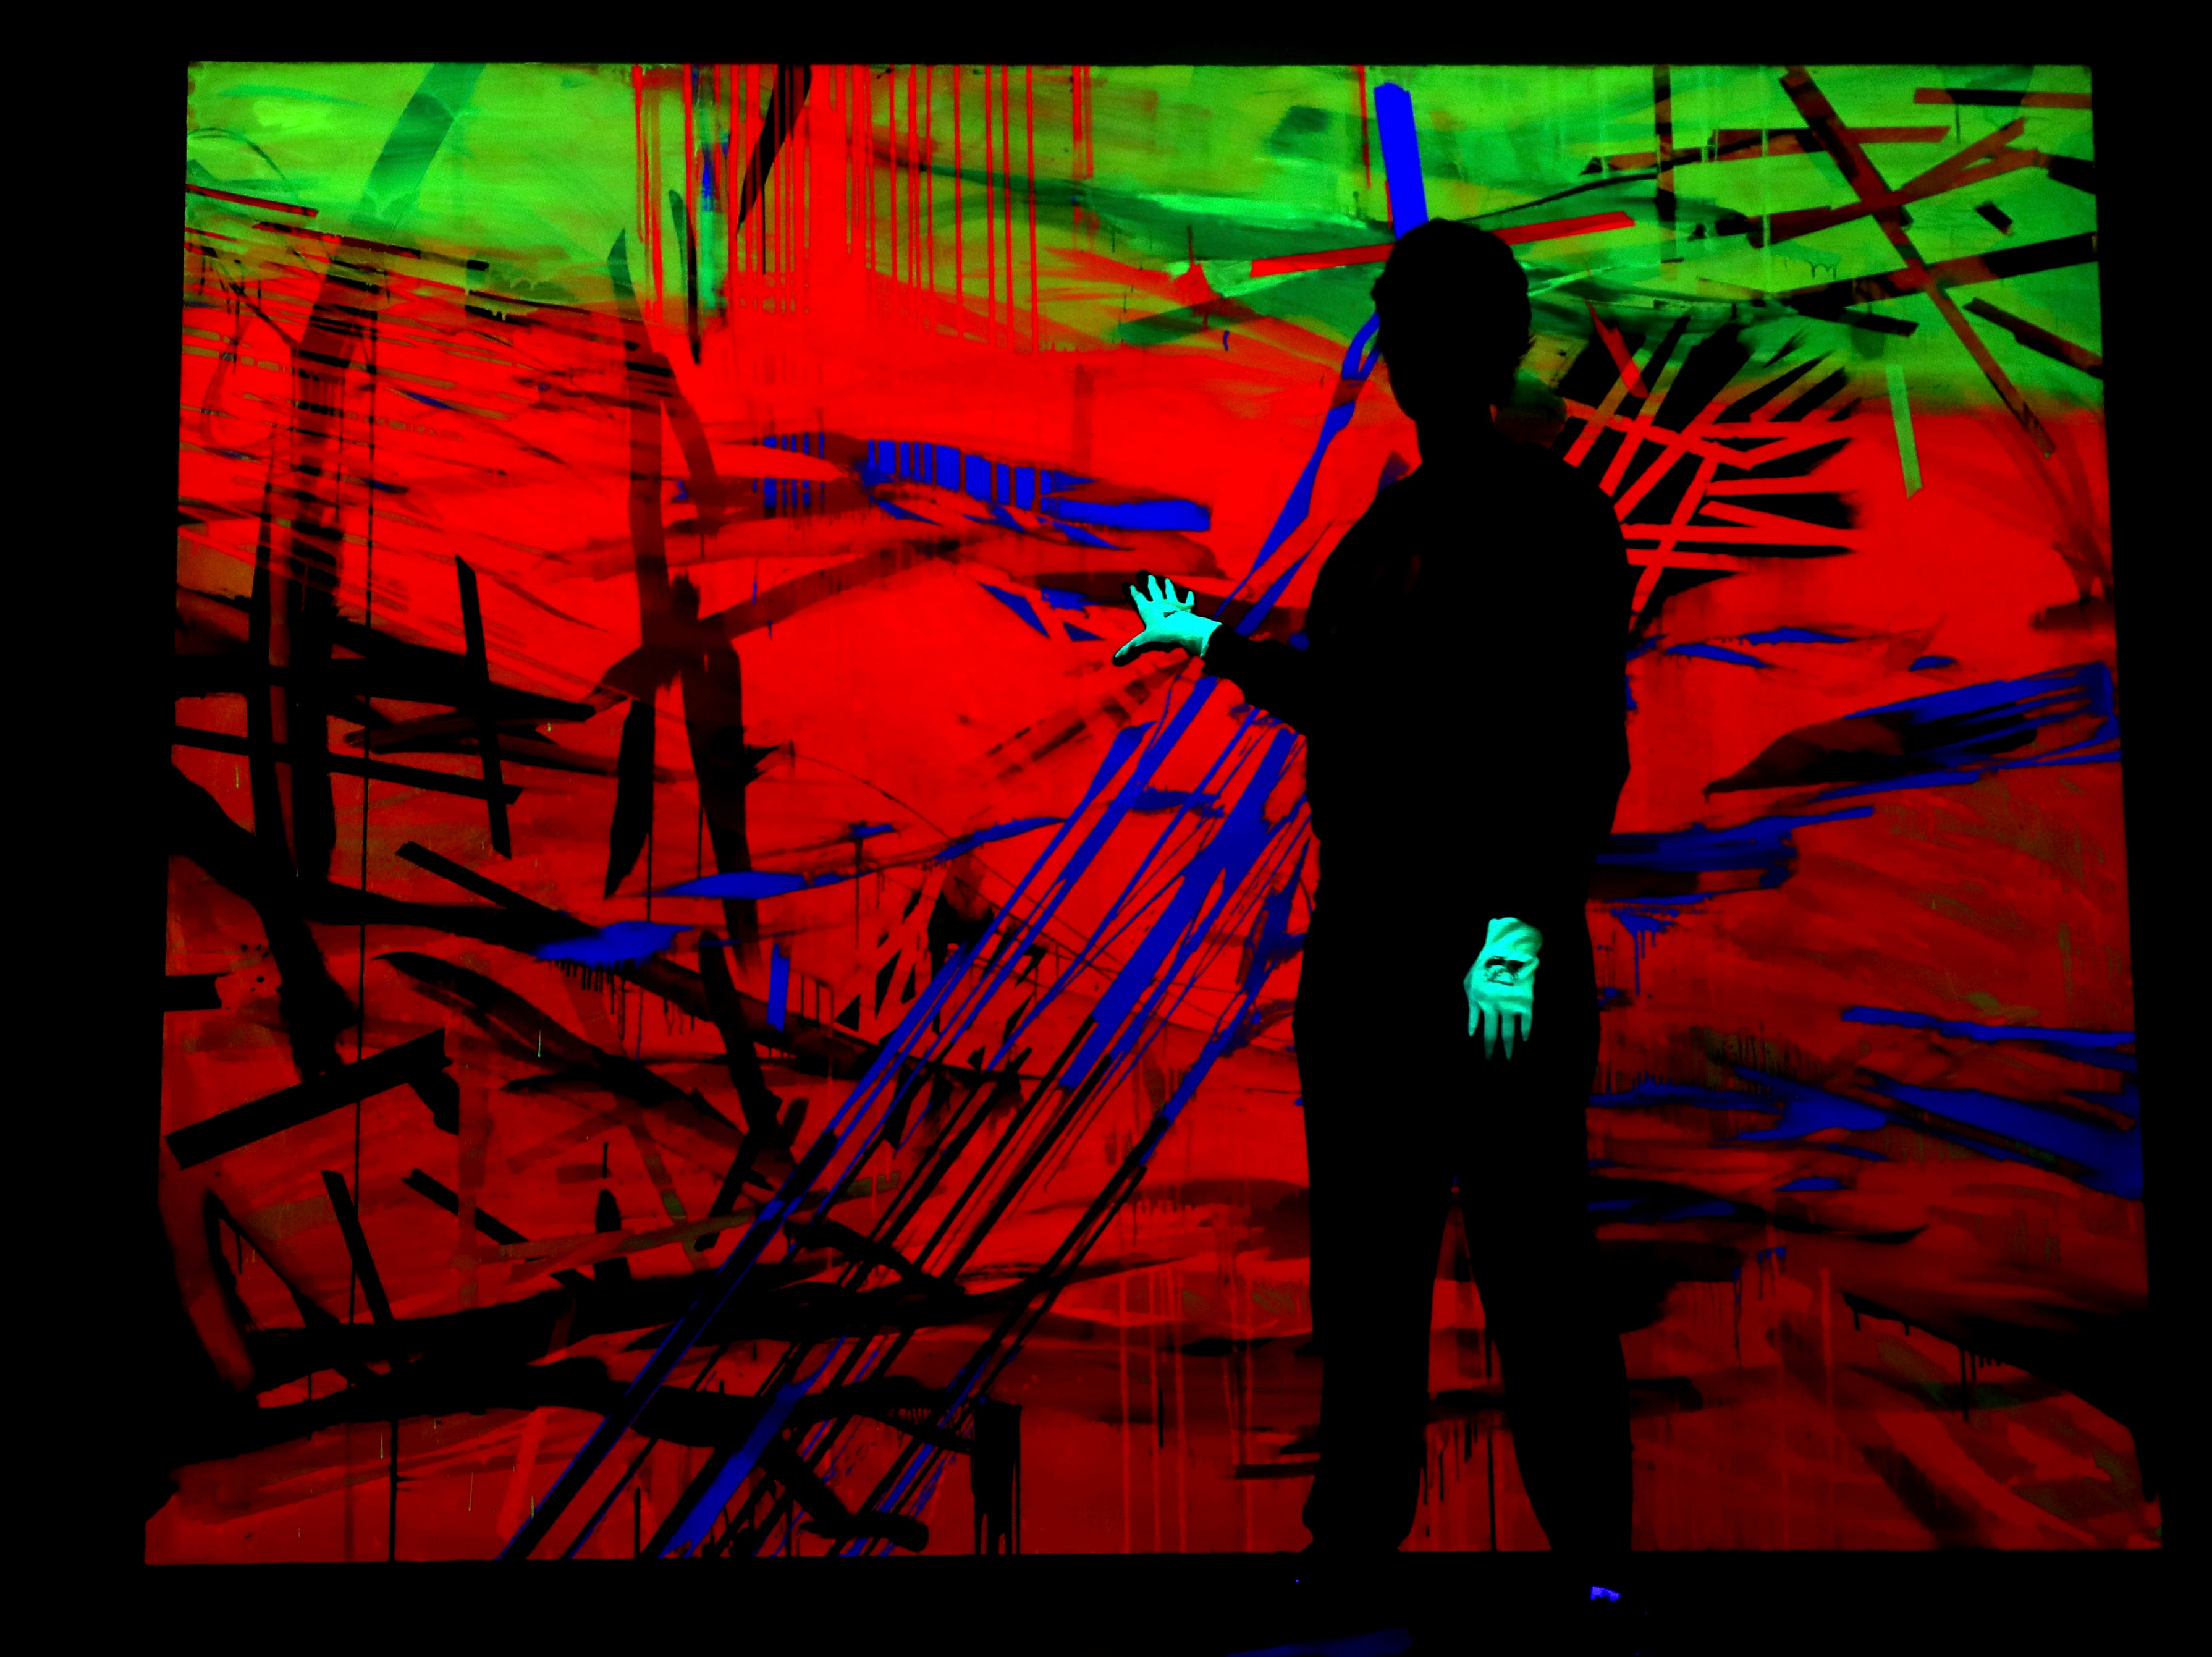 """Curator Patrizia Dander gestures at the works """"Black light paintings"""" by the US artist Jacqueline Humphries during a media- preview of the anniversary exhibition 'Forever Young - 10 Years Museum Brandhorst' in Munich, Germany, Tuesday, May 7, 2019. The exhibition will open on May 23 and, in addition to well-known and popular highlights from the collection, will also show numerous acquisitions that have been included in the Brandhorst Collection since 2009 and are now being presented for the first time in the museum. The exhibition comprises around 250 works by 45 artists, including Andy Warhol, Cy Twombly, Bruce Nauman, Cady Noland and Wolfgang Tilmans."""